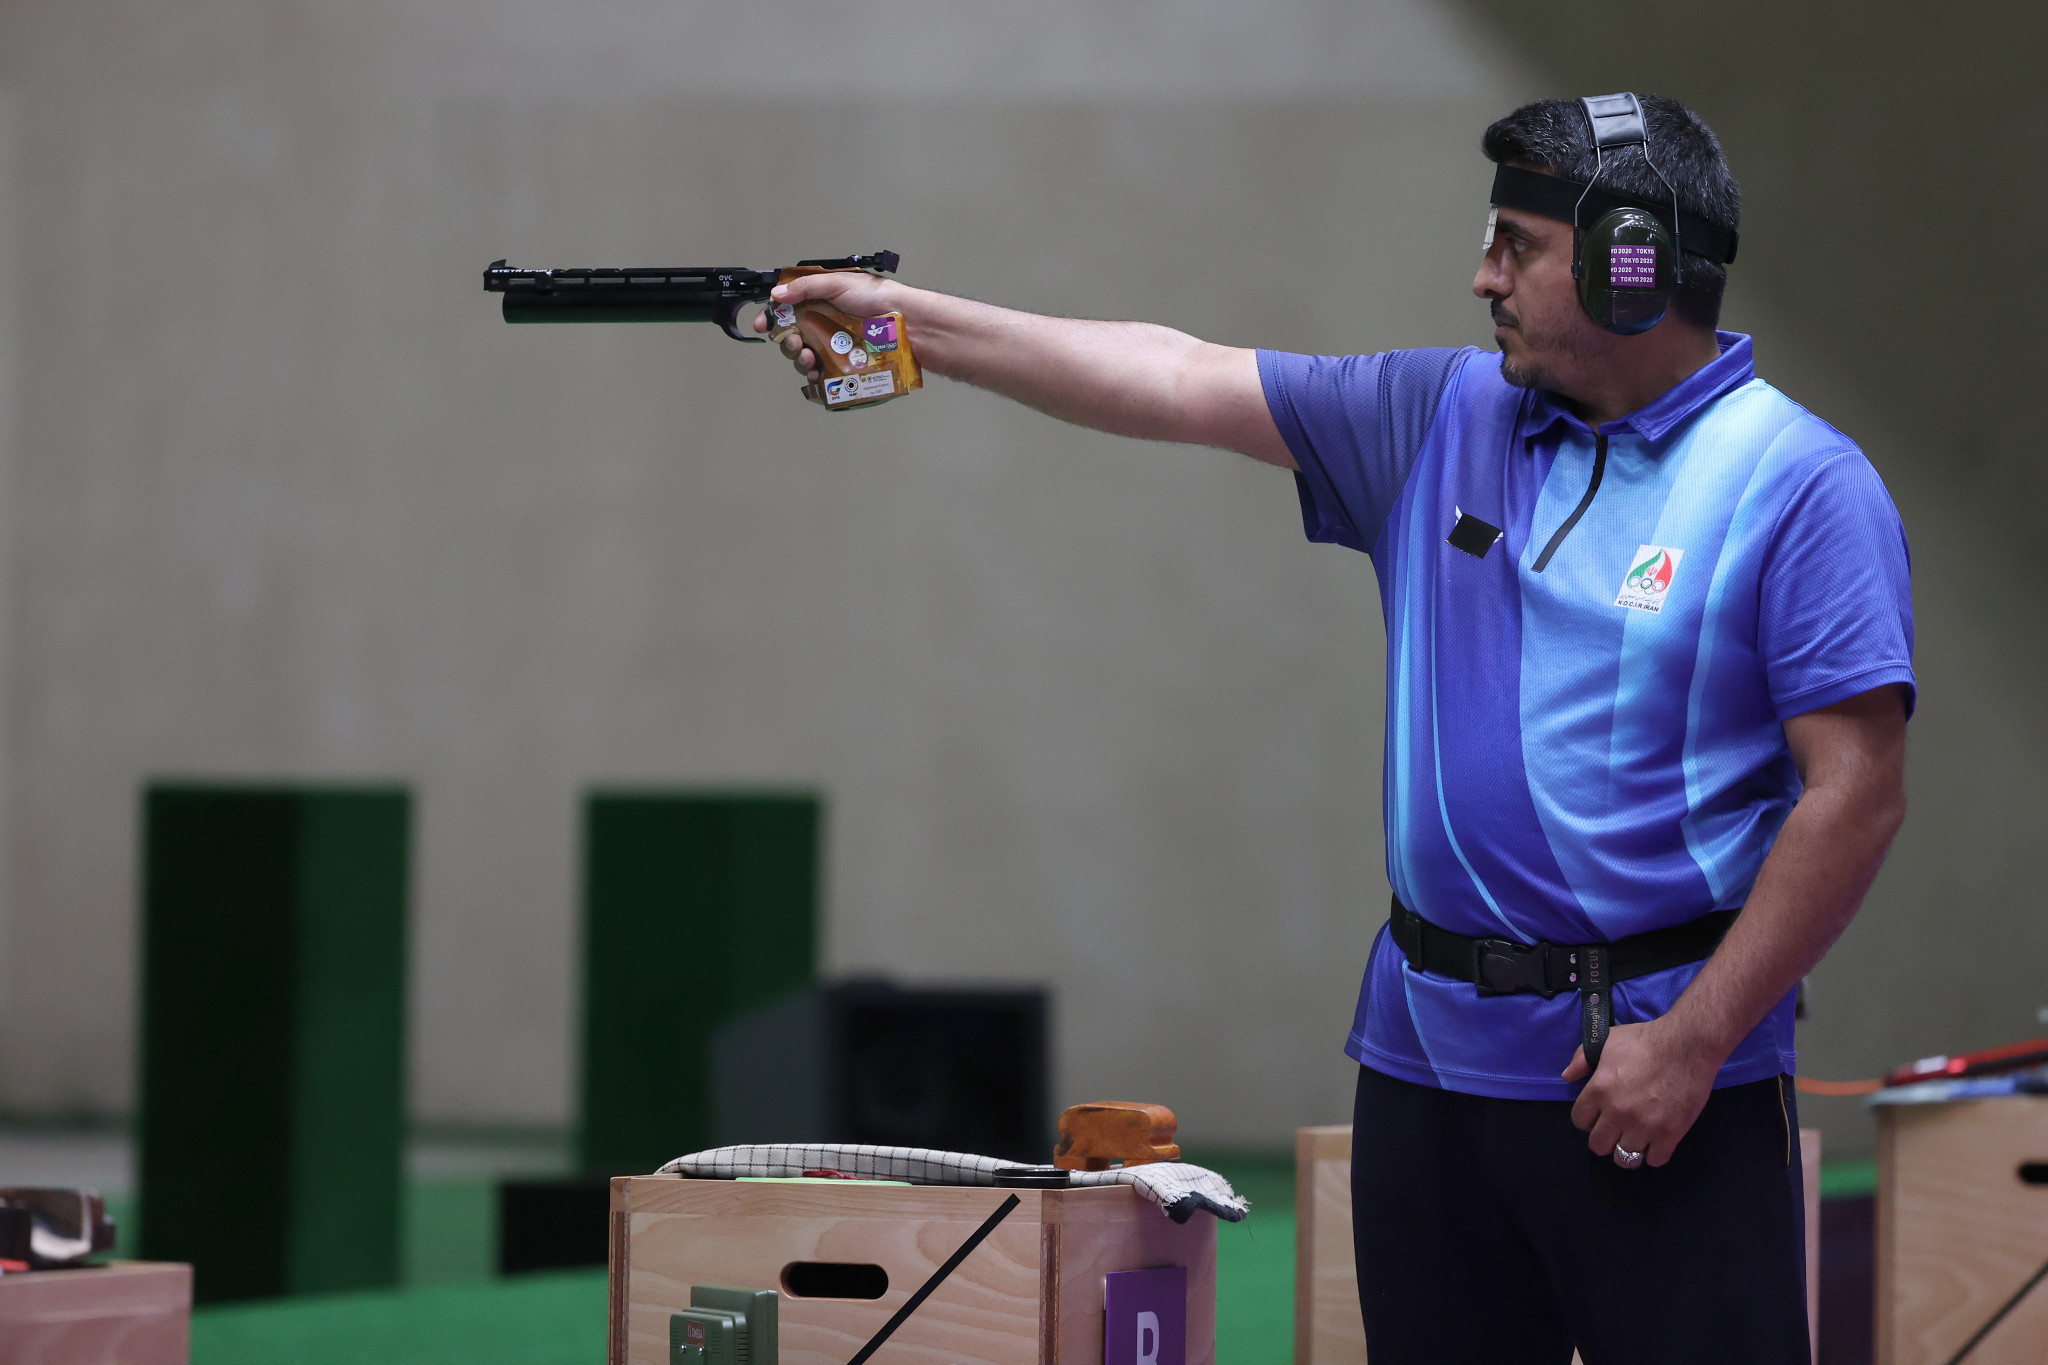 COVID-19 nurse Javad Foroughi won pistol gold for Iran ©Getty Images